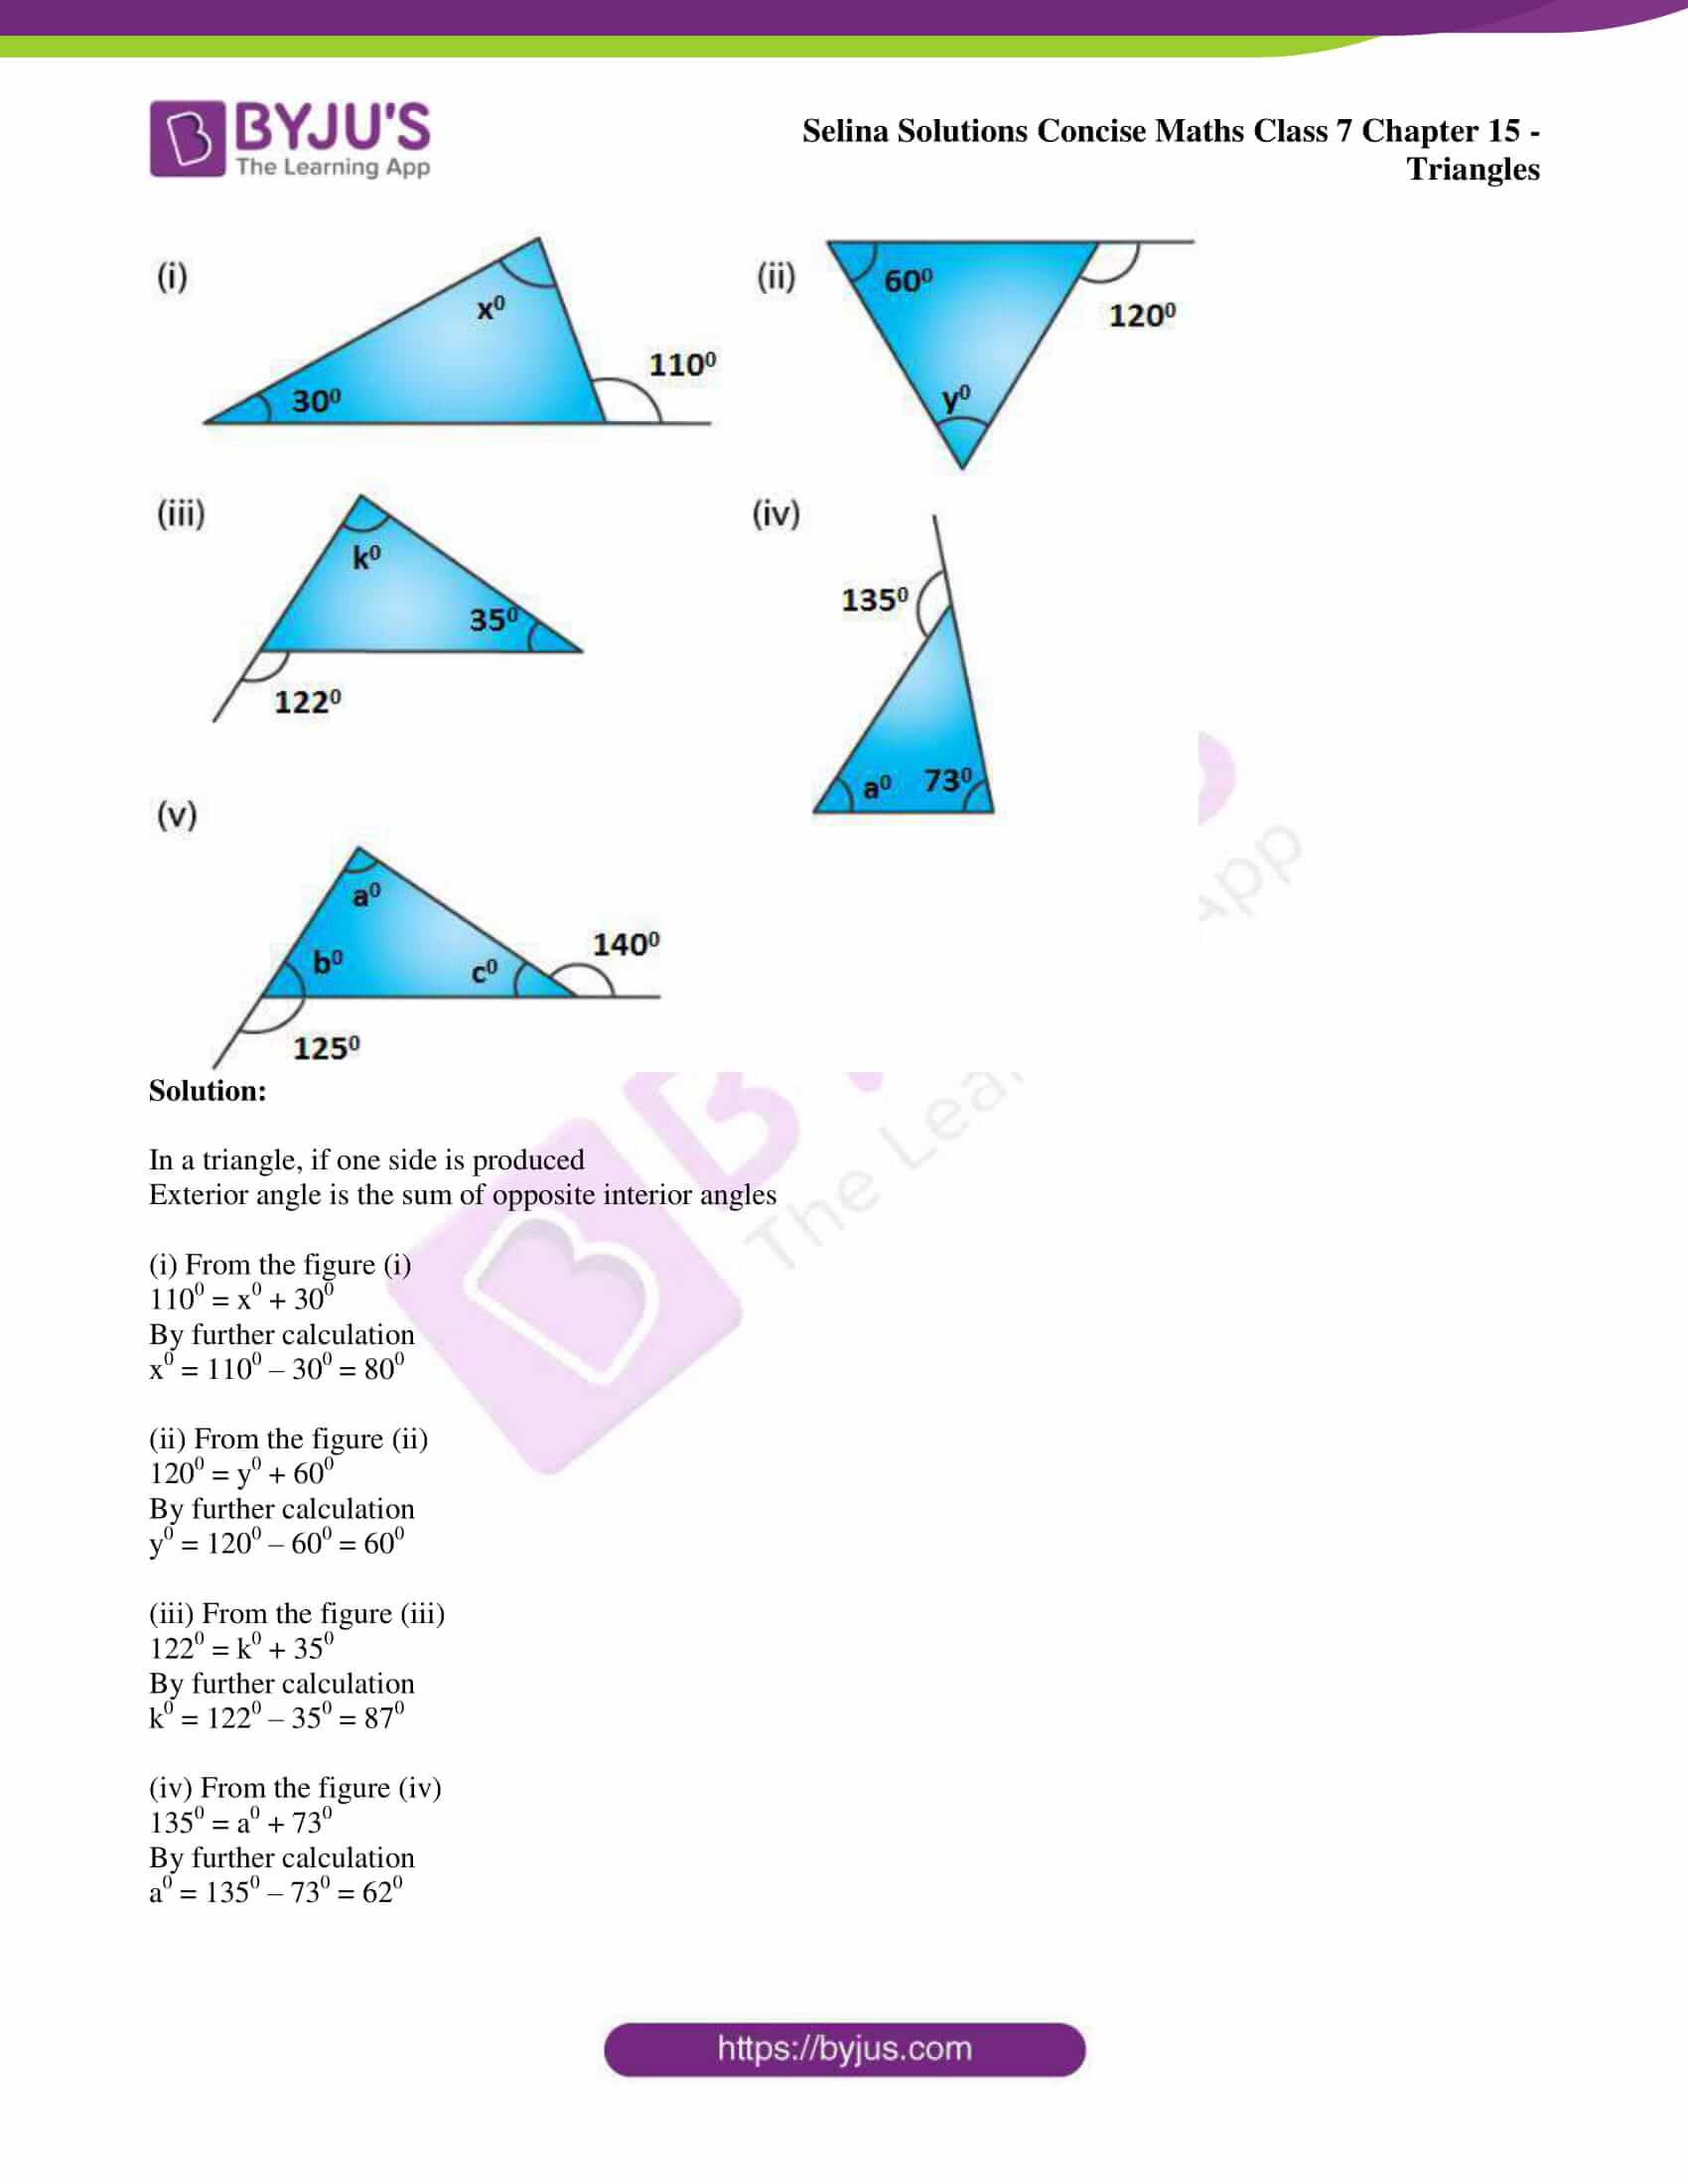 selina sol concise maths class 7 chapter 15 ex a 8